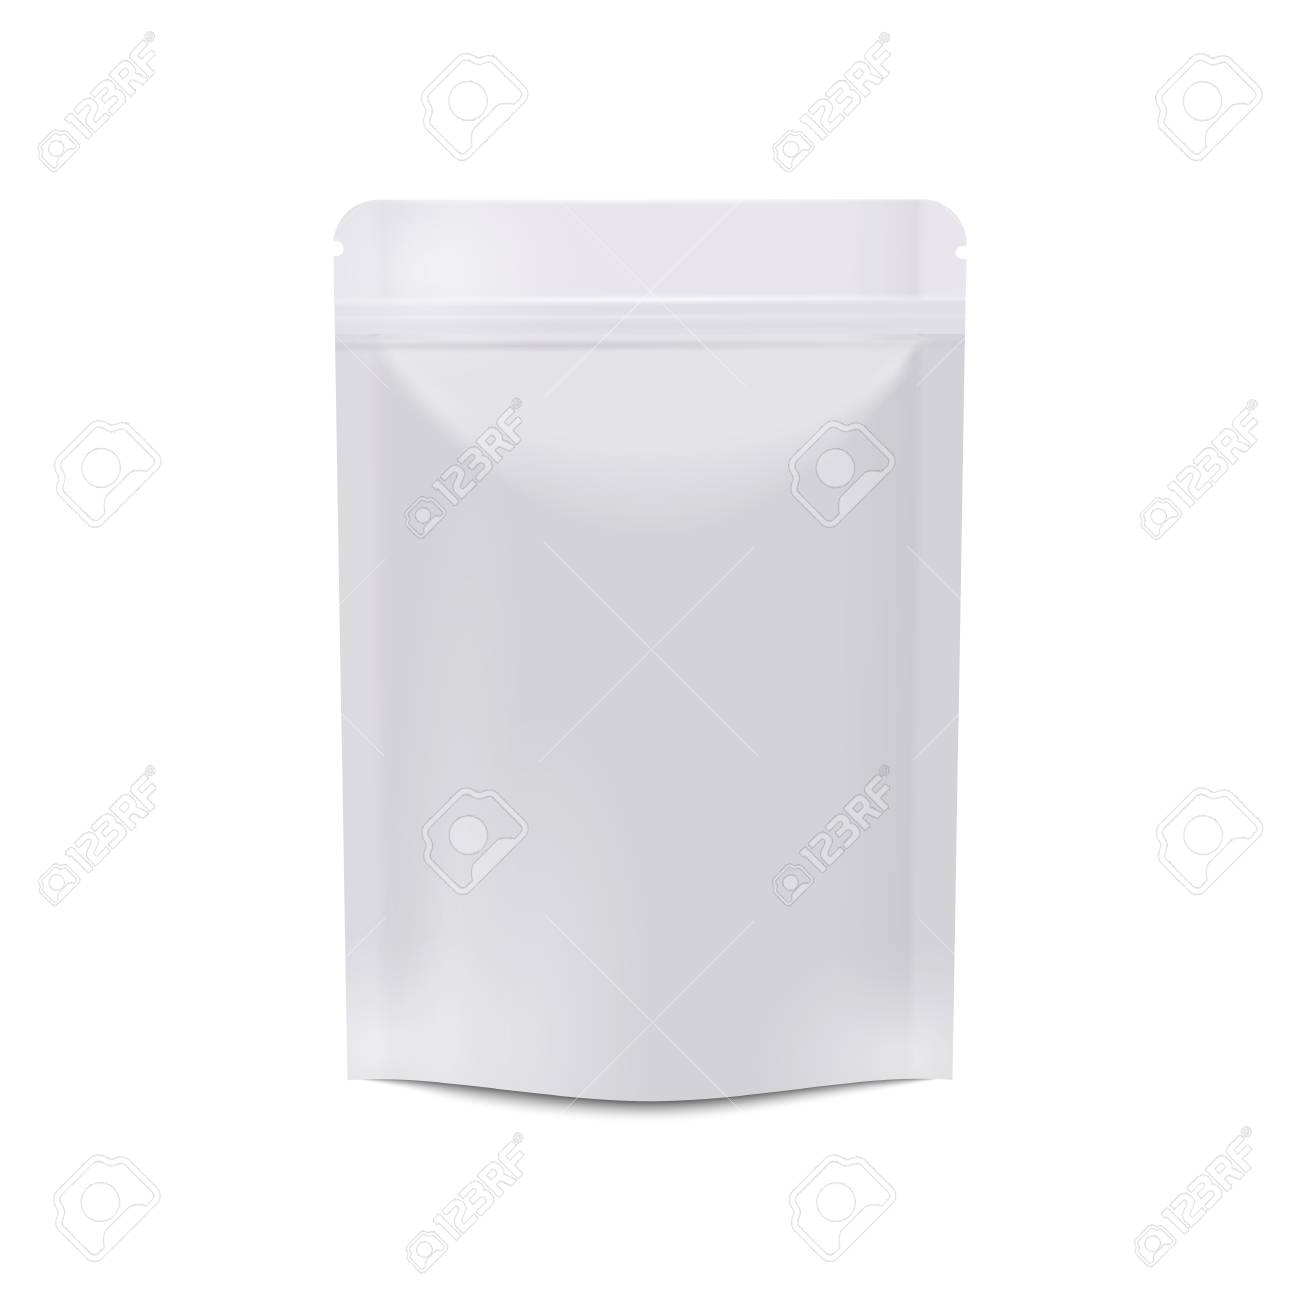 Realistic White Blank Food Packaging. Vertical Sealed Empty Bag ...